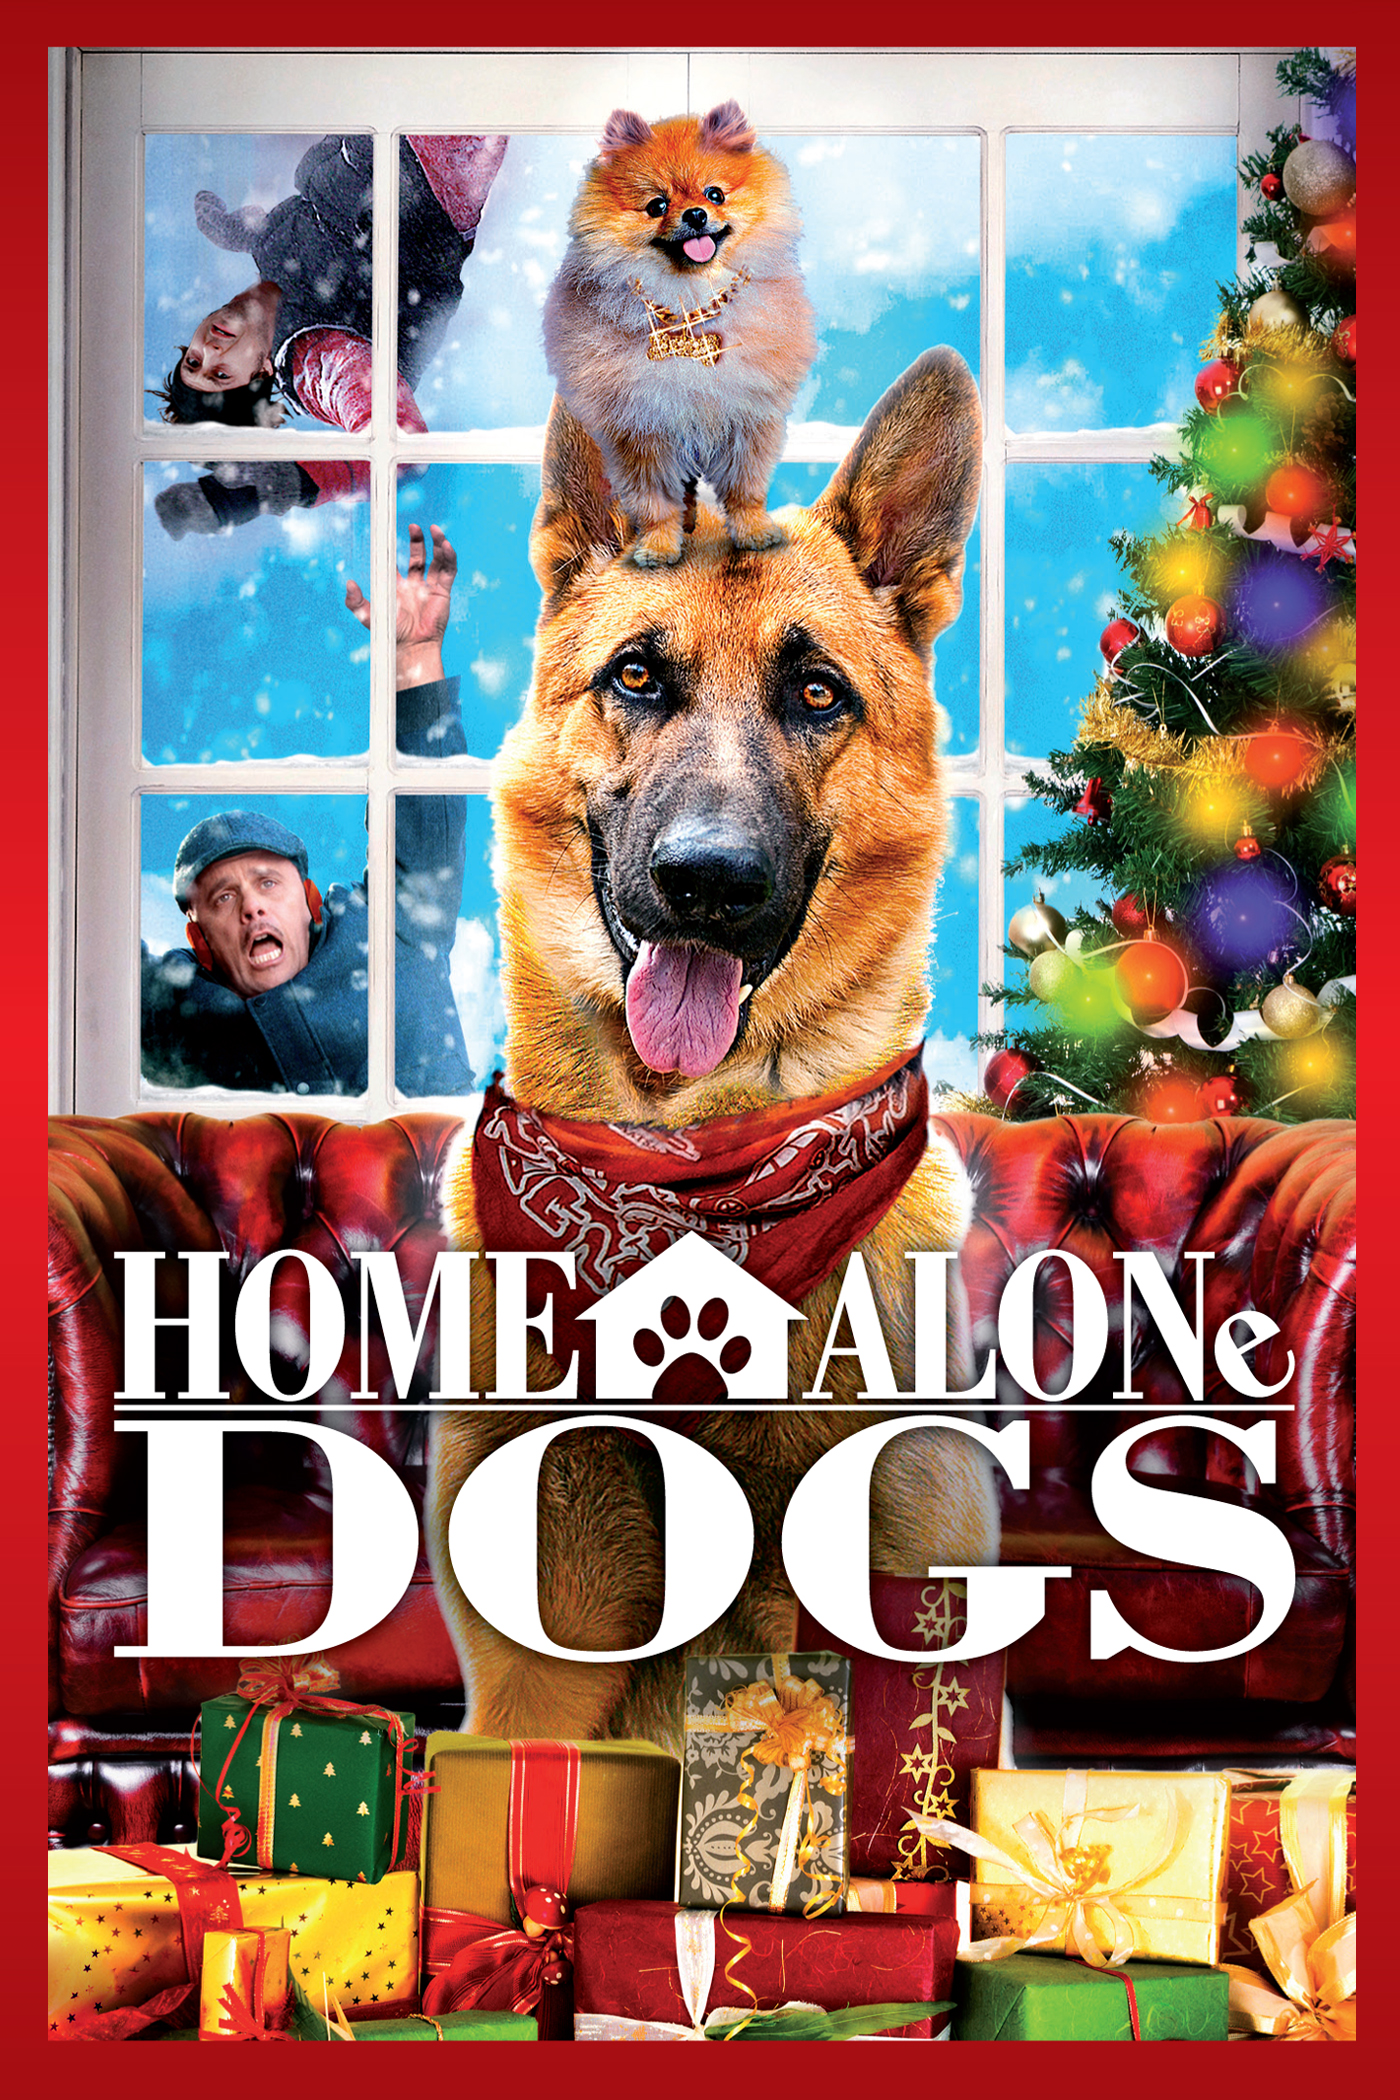 Itunes Films 39 Home Alone Dogs 39